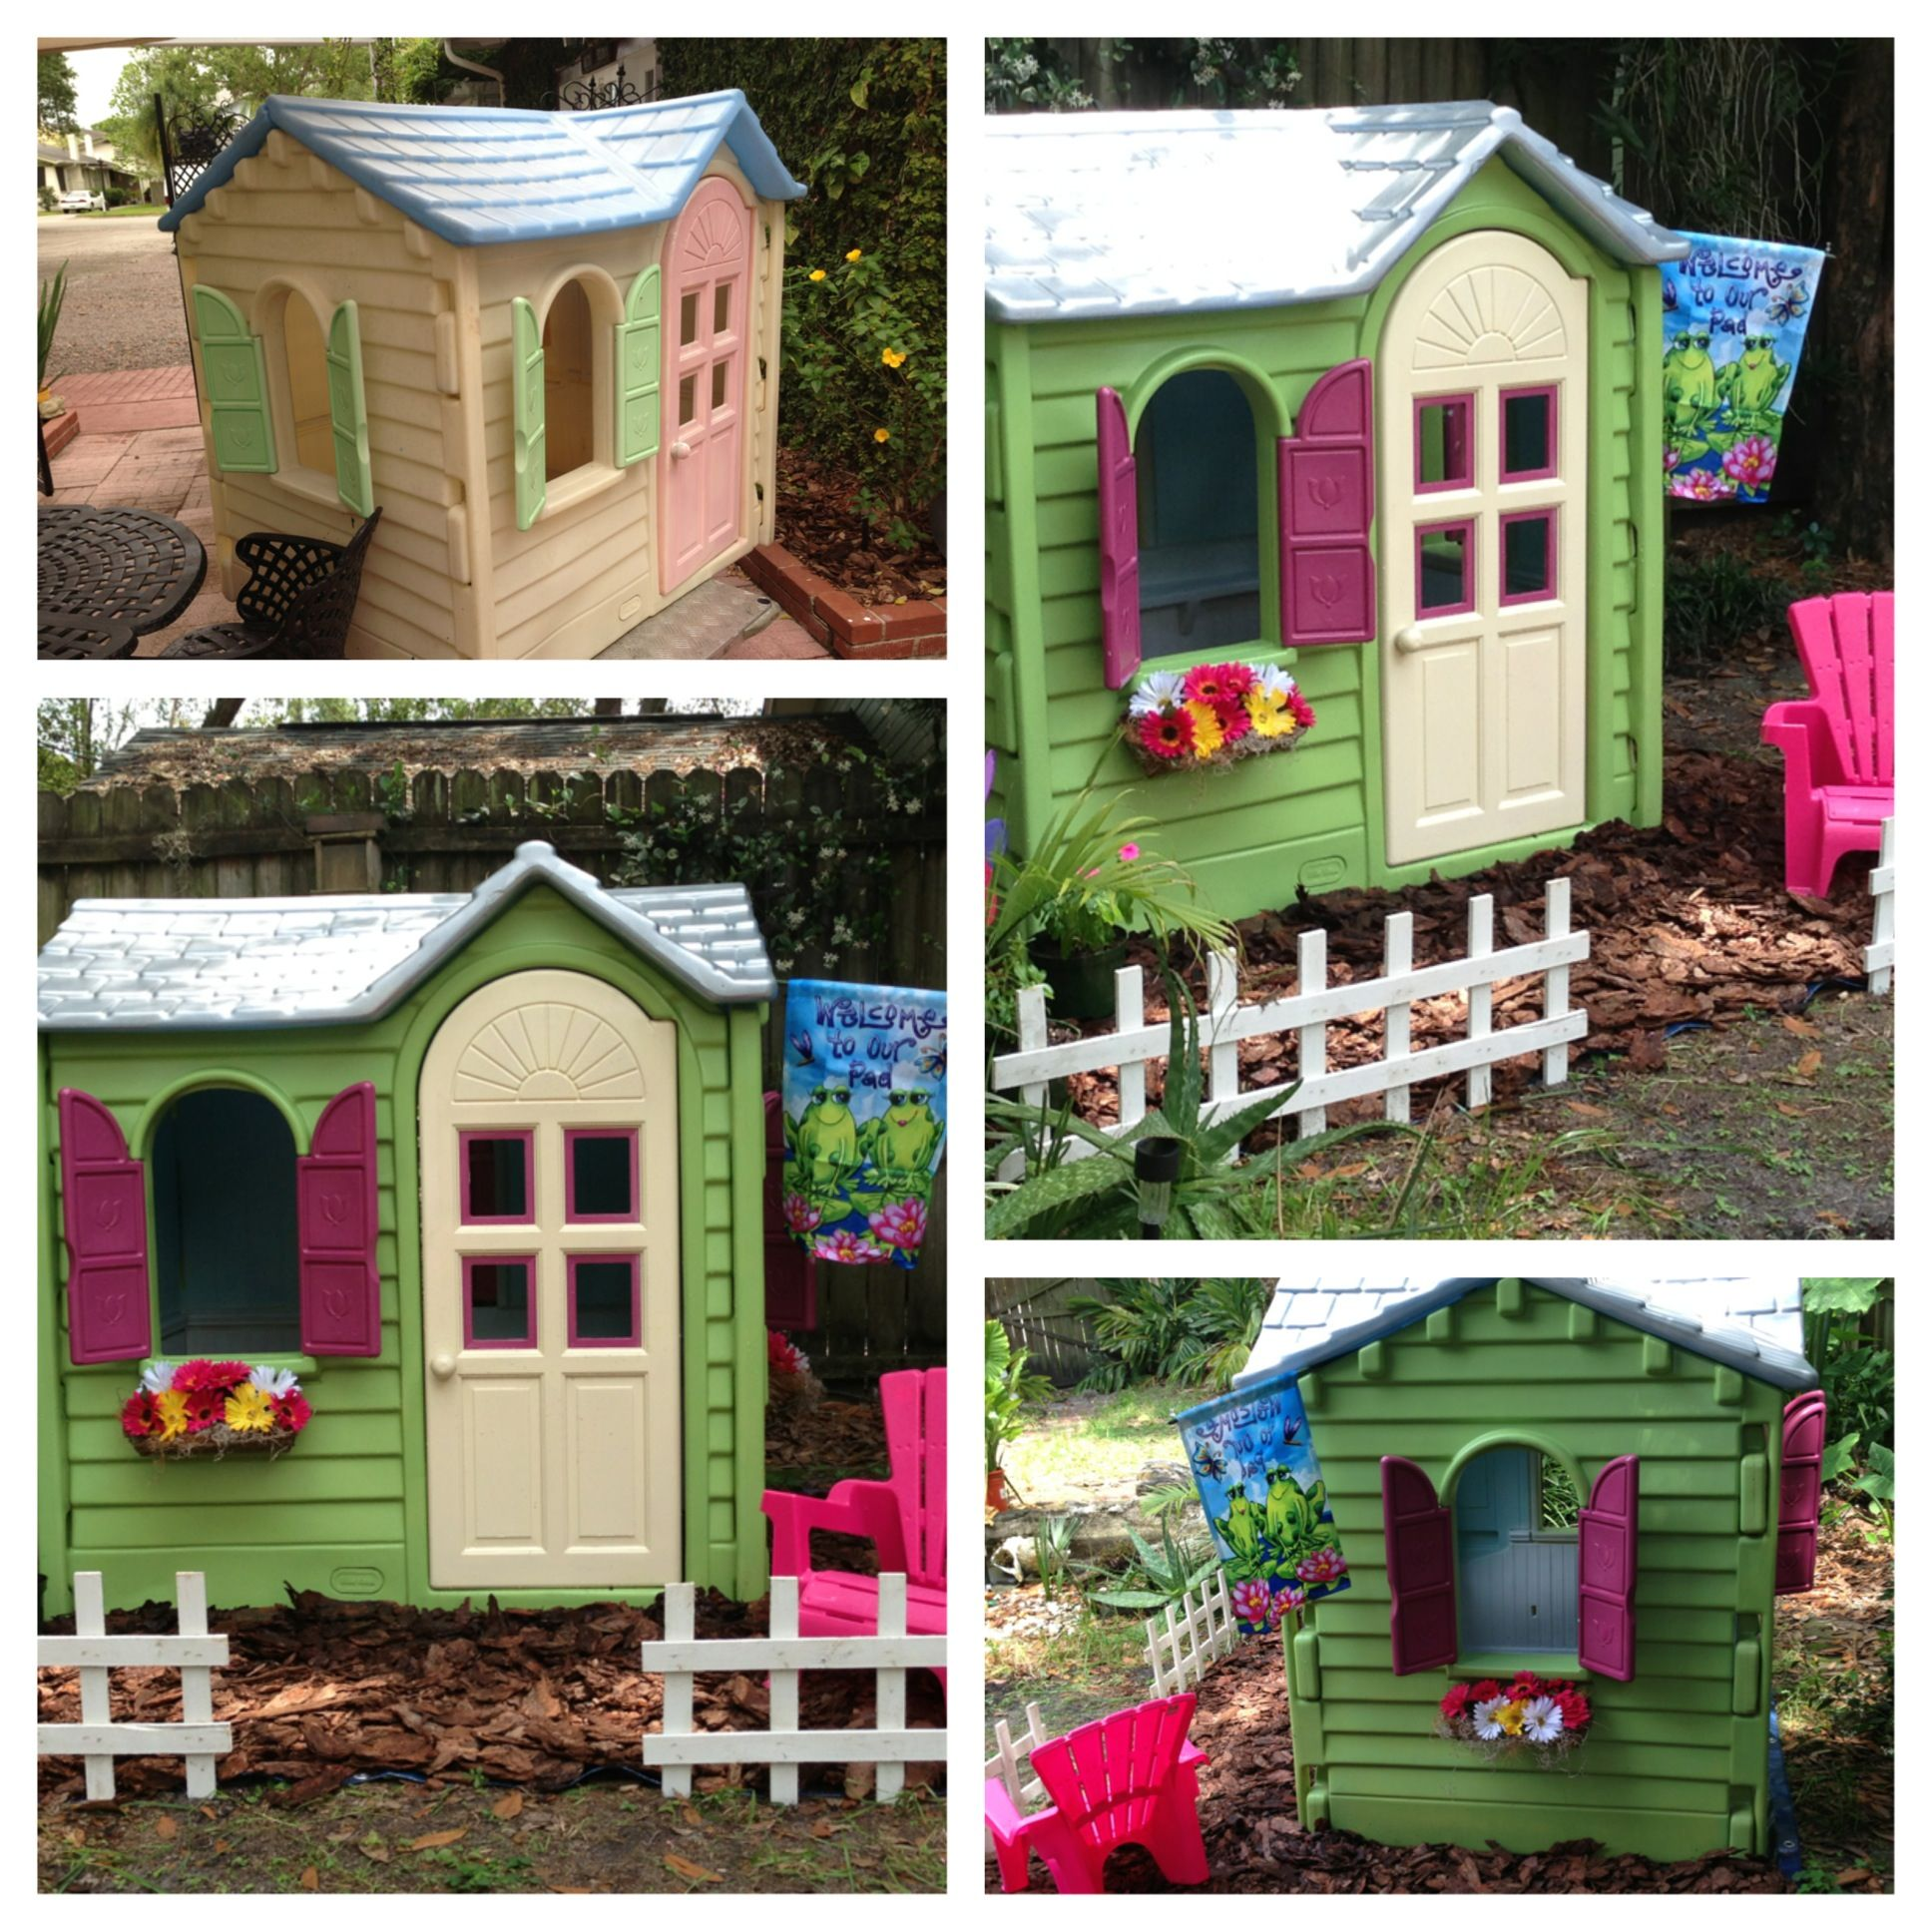 Playhouse I bought for 25 and painted with Valspar spray